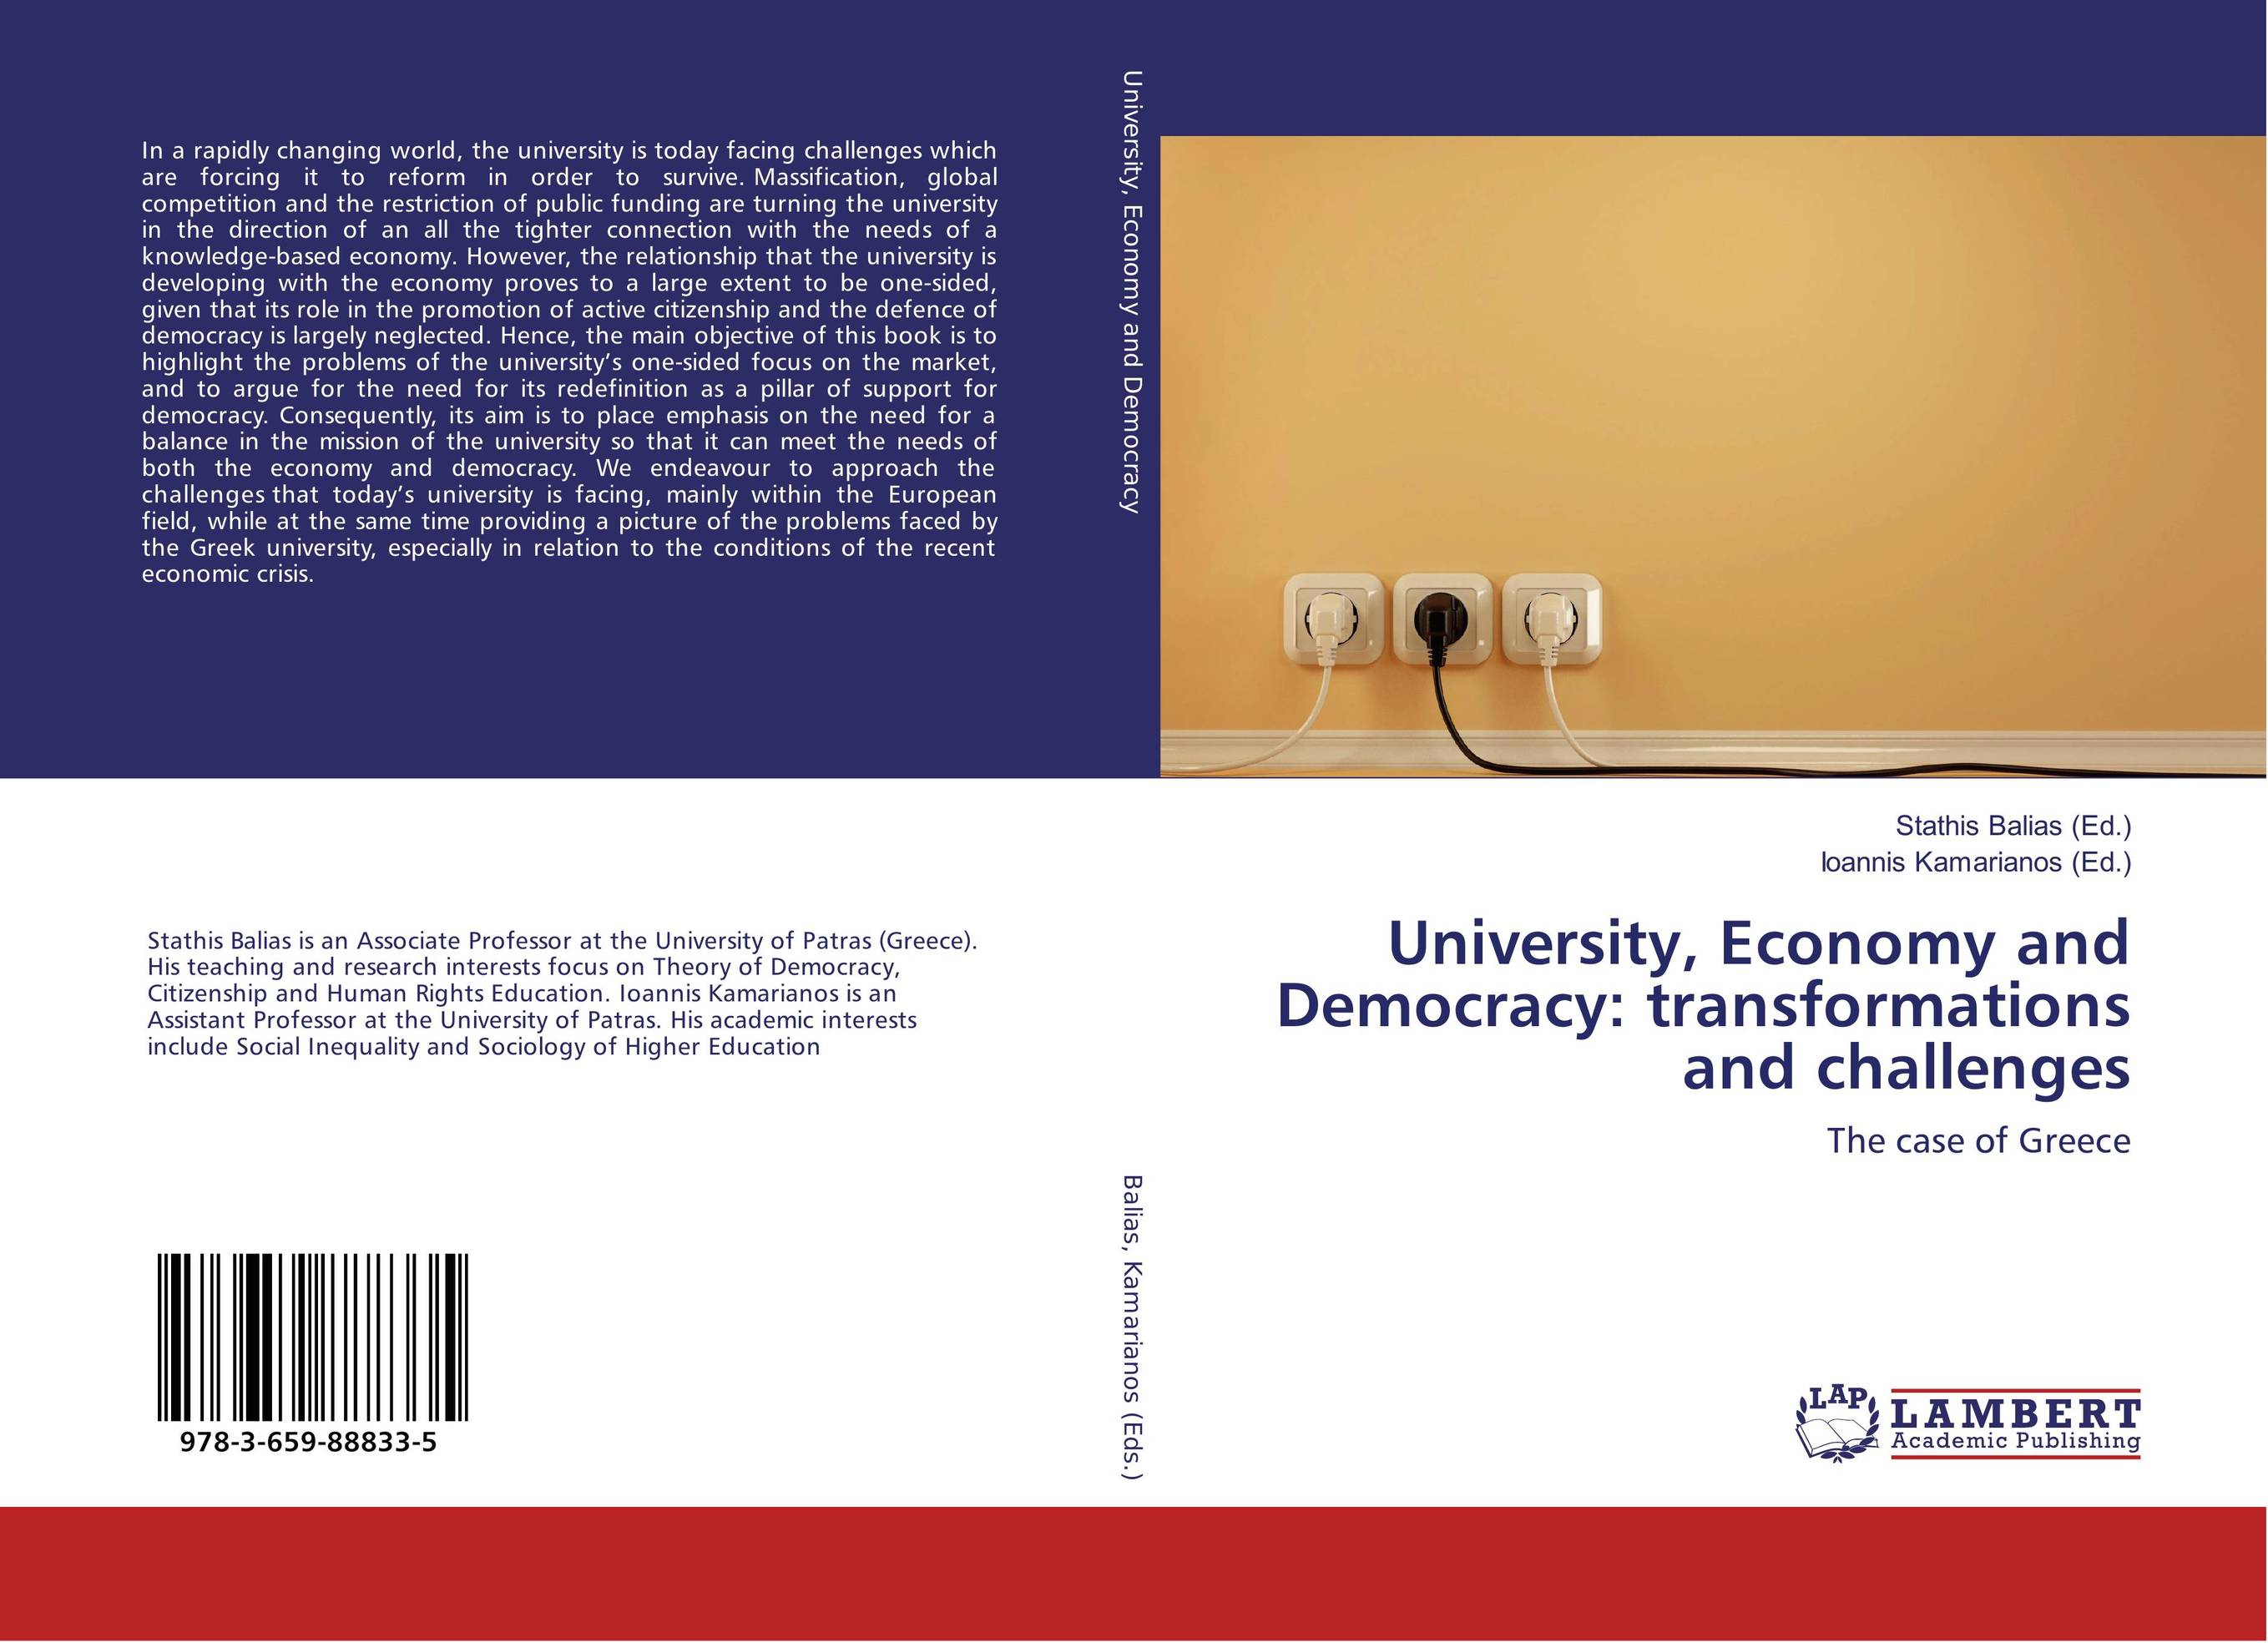 University, Economy and Democracy: transformations and challenges democracy in america nce